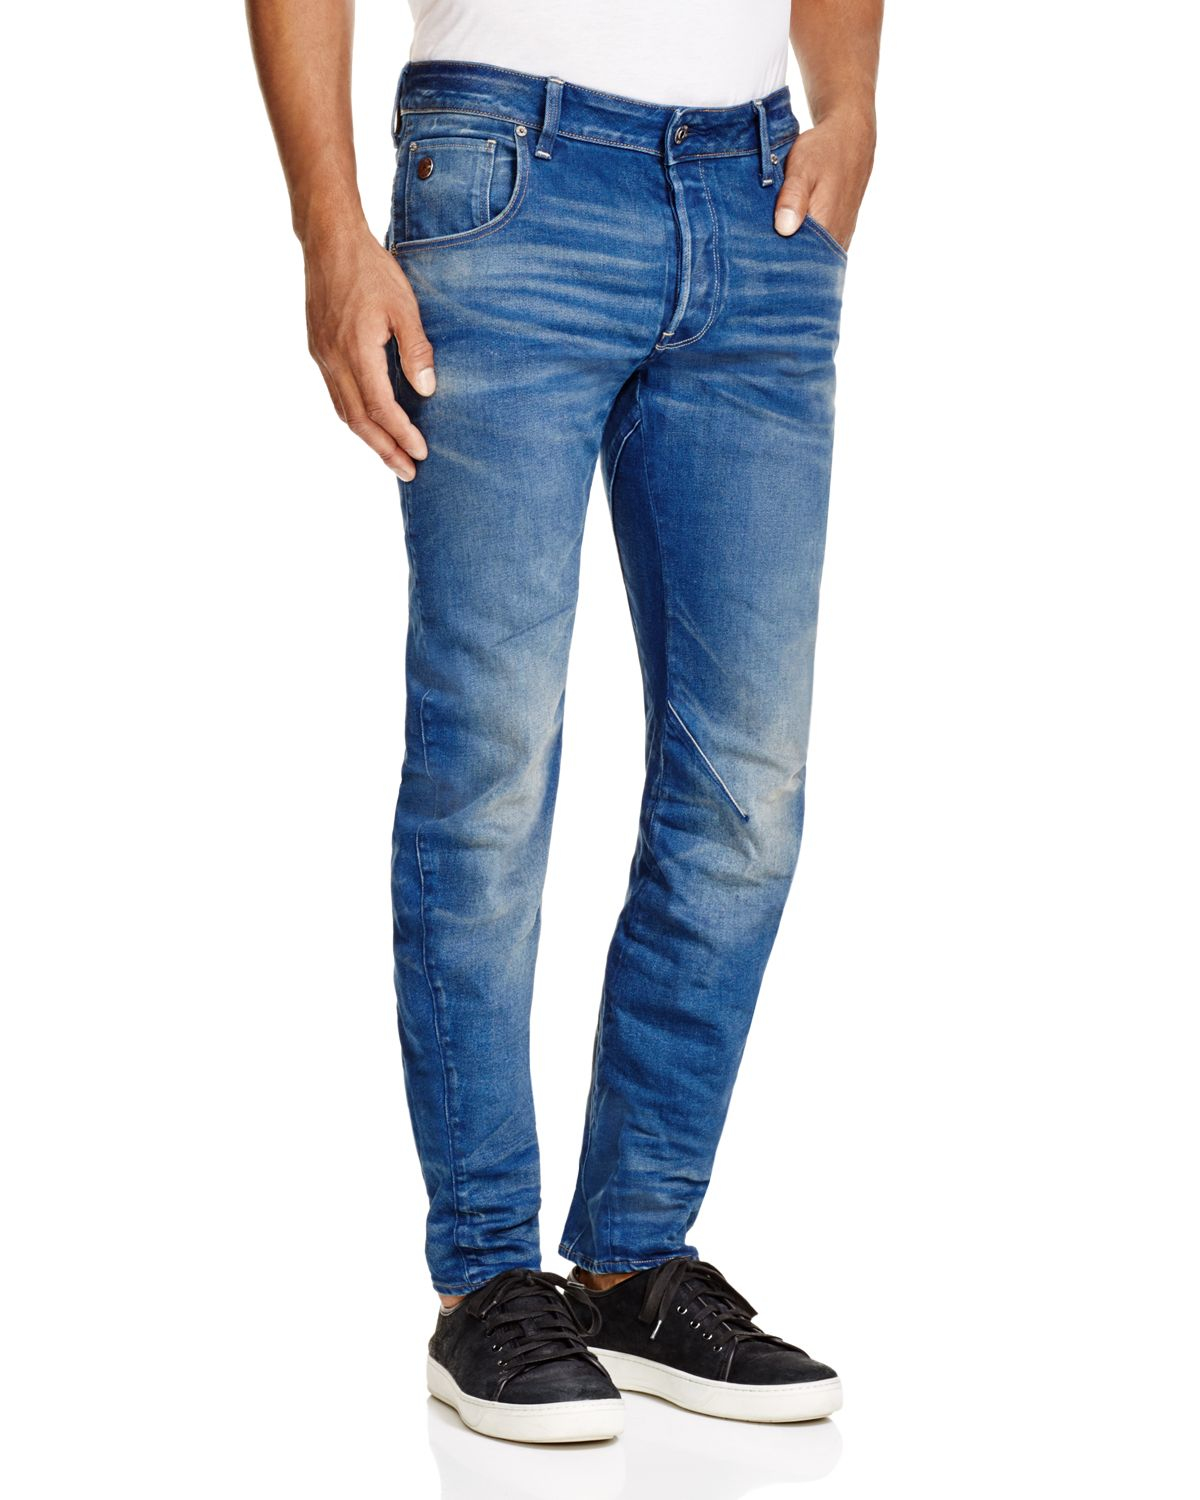 g star raw raw arc 3d slim fit jeans in medium age in blue. Black Bedroom Furniture Sets. Home Design Ideas